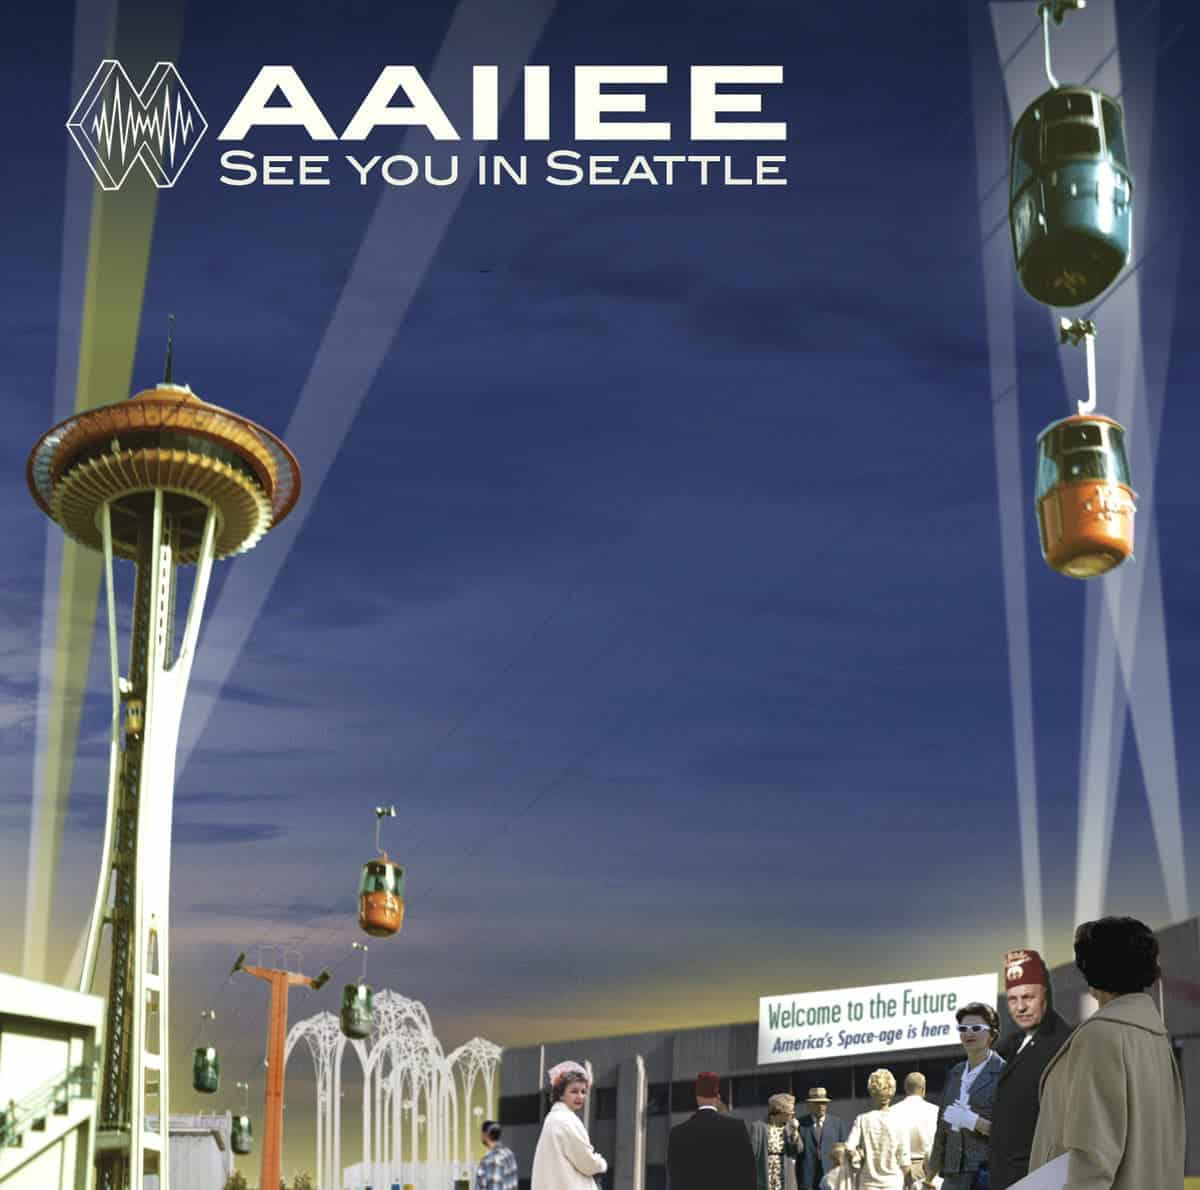 AAIIEE - See You In Seattle